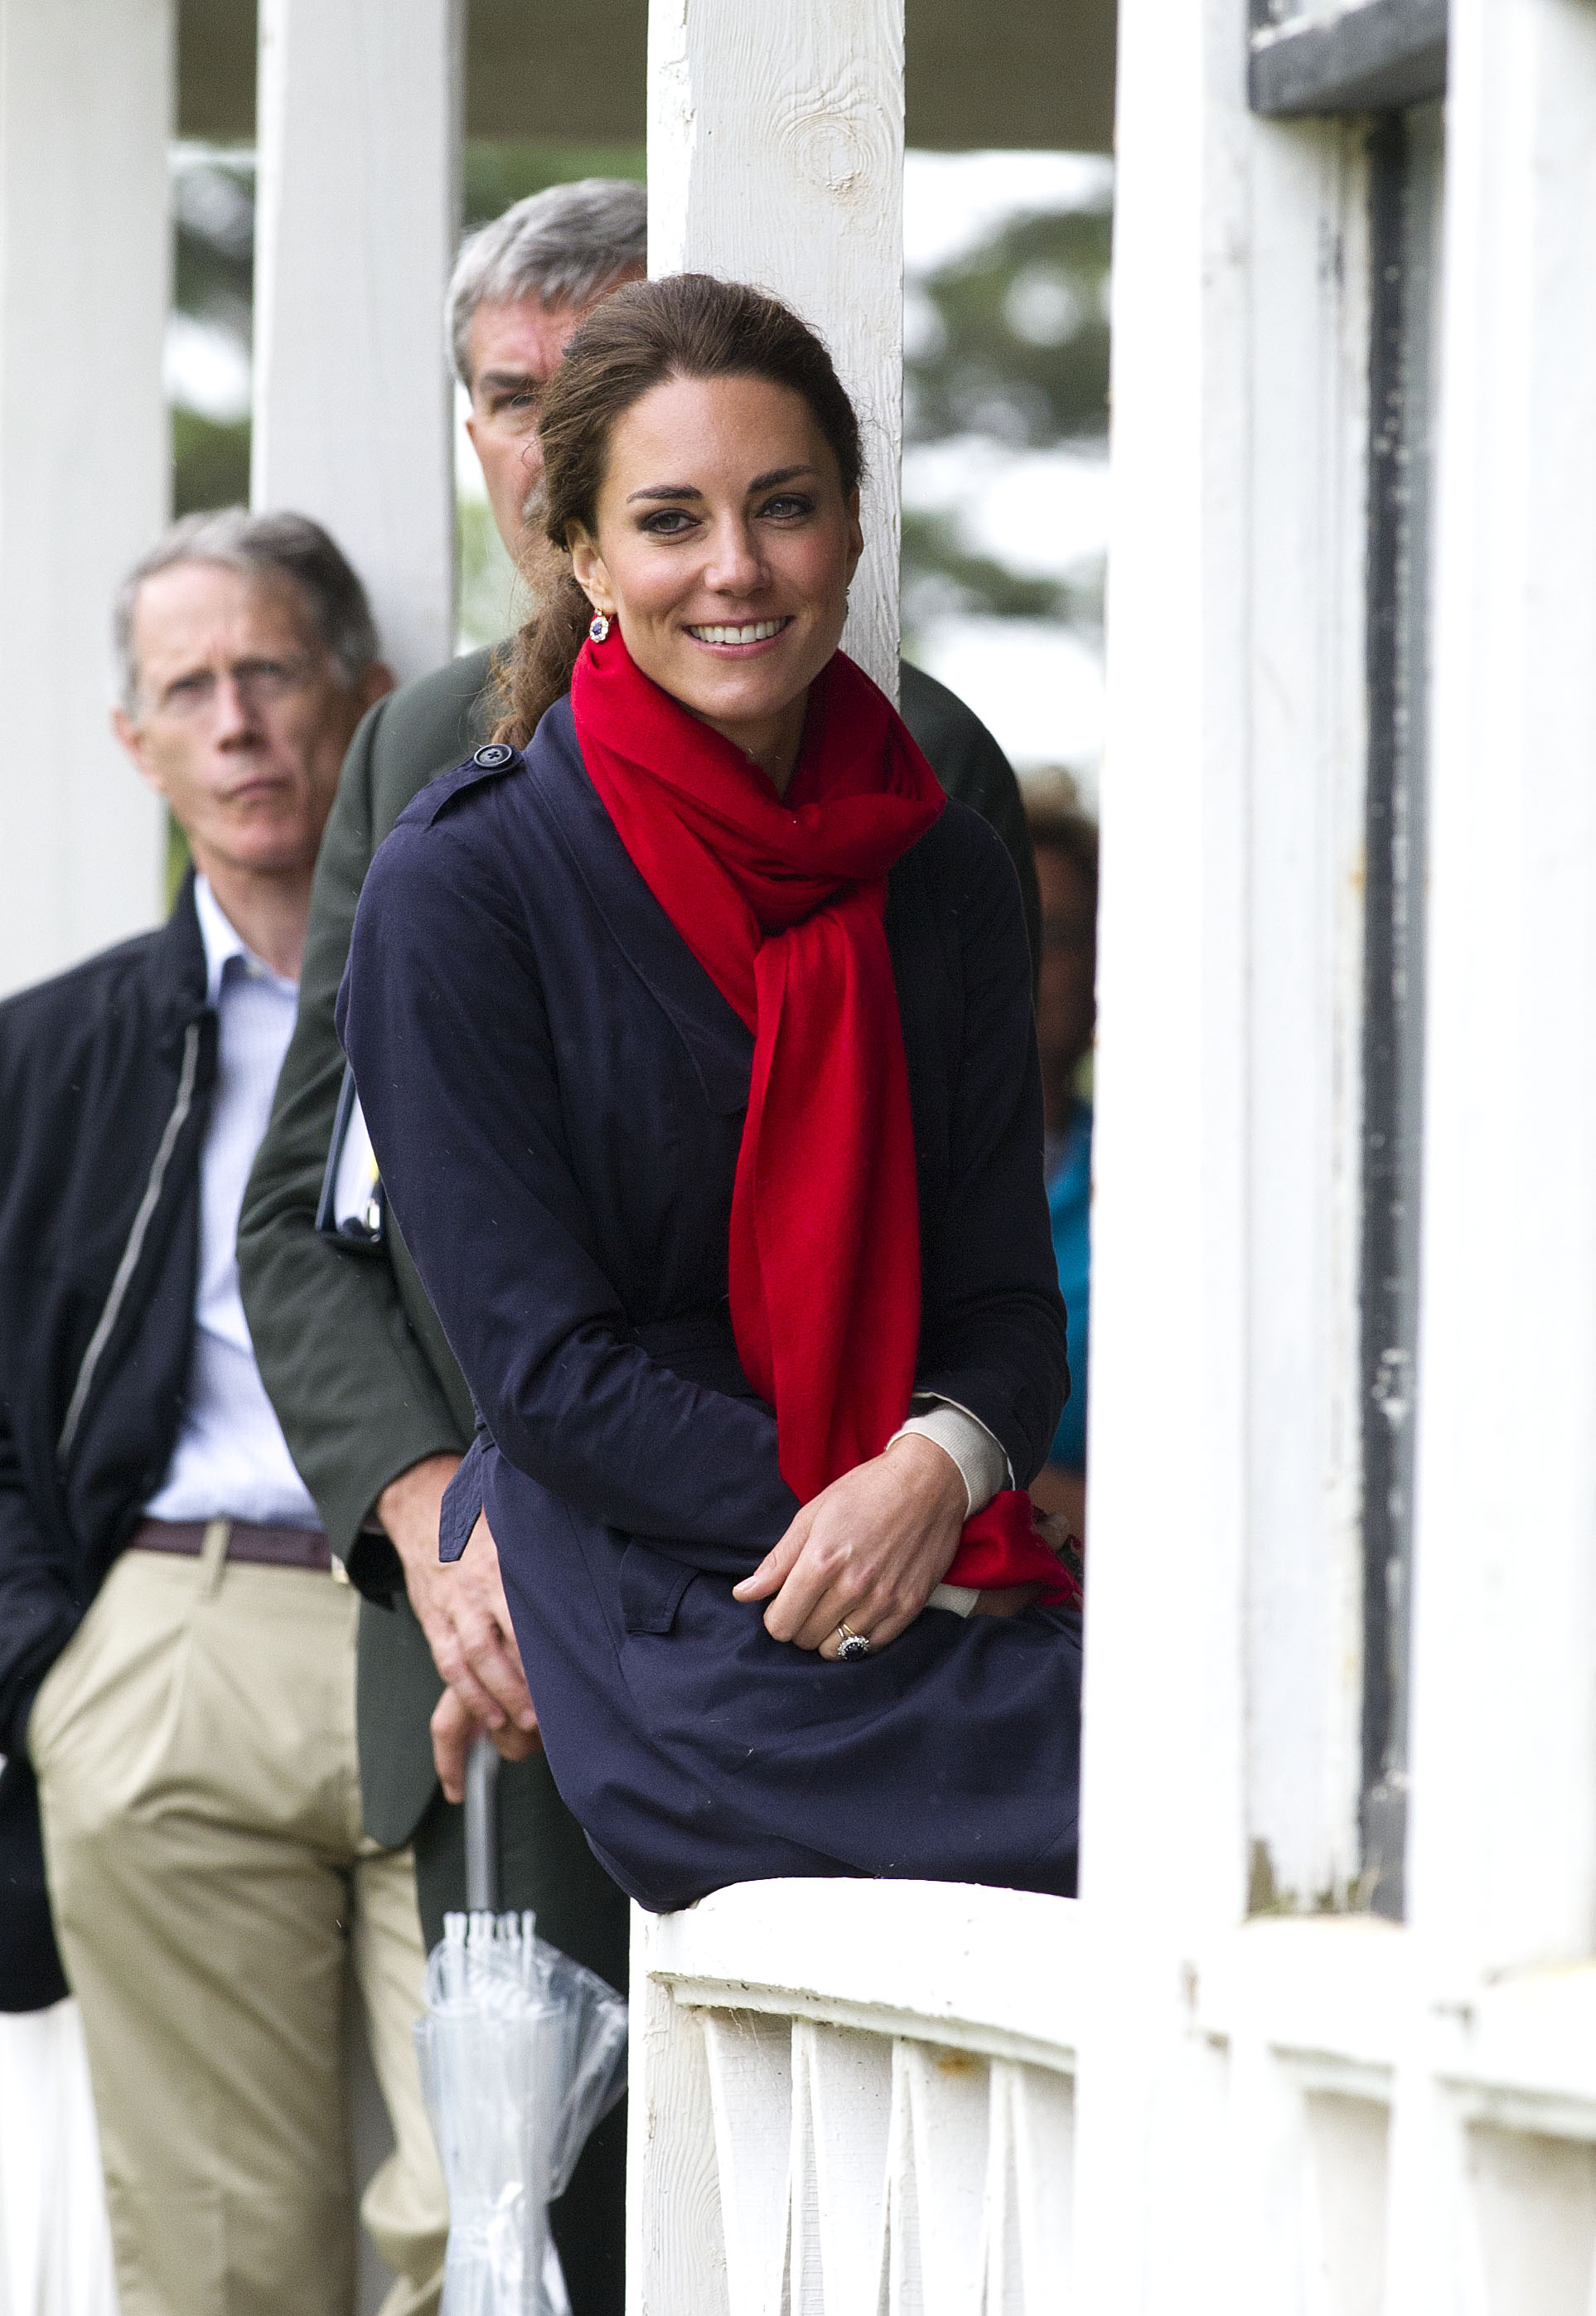 <strong>In the Trenches</strong>                                   The Duchess wore a navy blue trench coat, accessorized with a red scarf, on July 4, 2011, in Charlottetown, Canada. Her appearance in a beige Burberry trench coat in 2010 led the jacket to sell out in stores immediately.